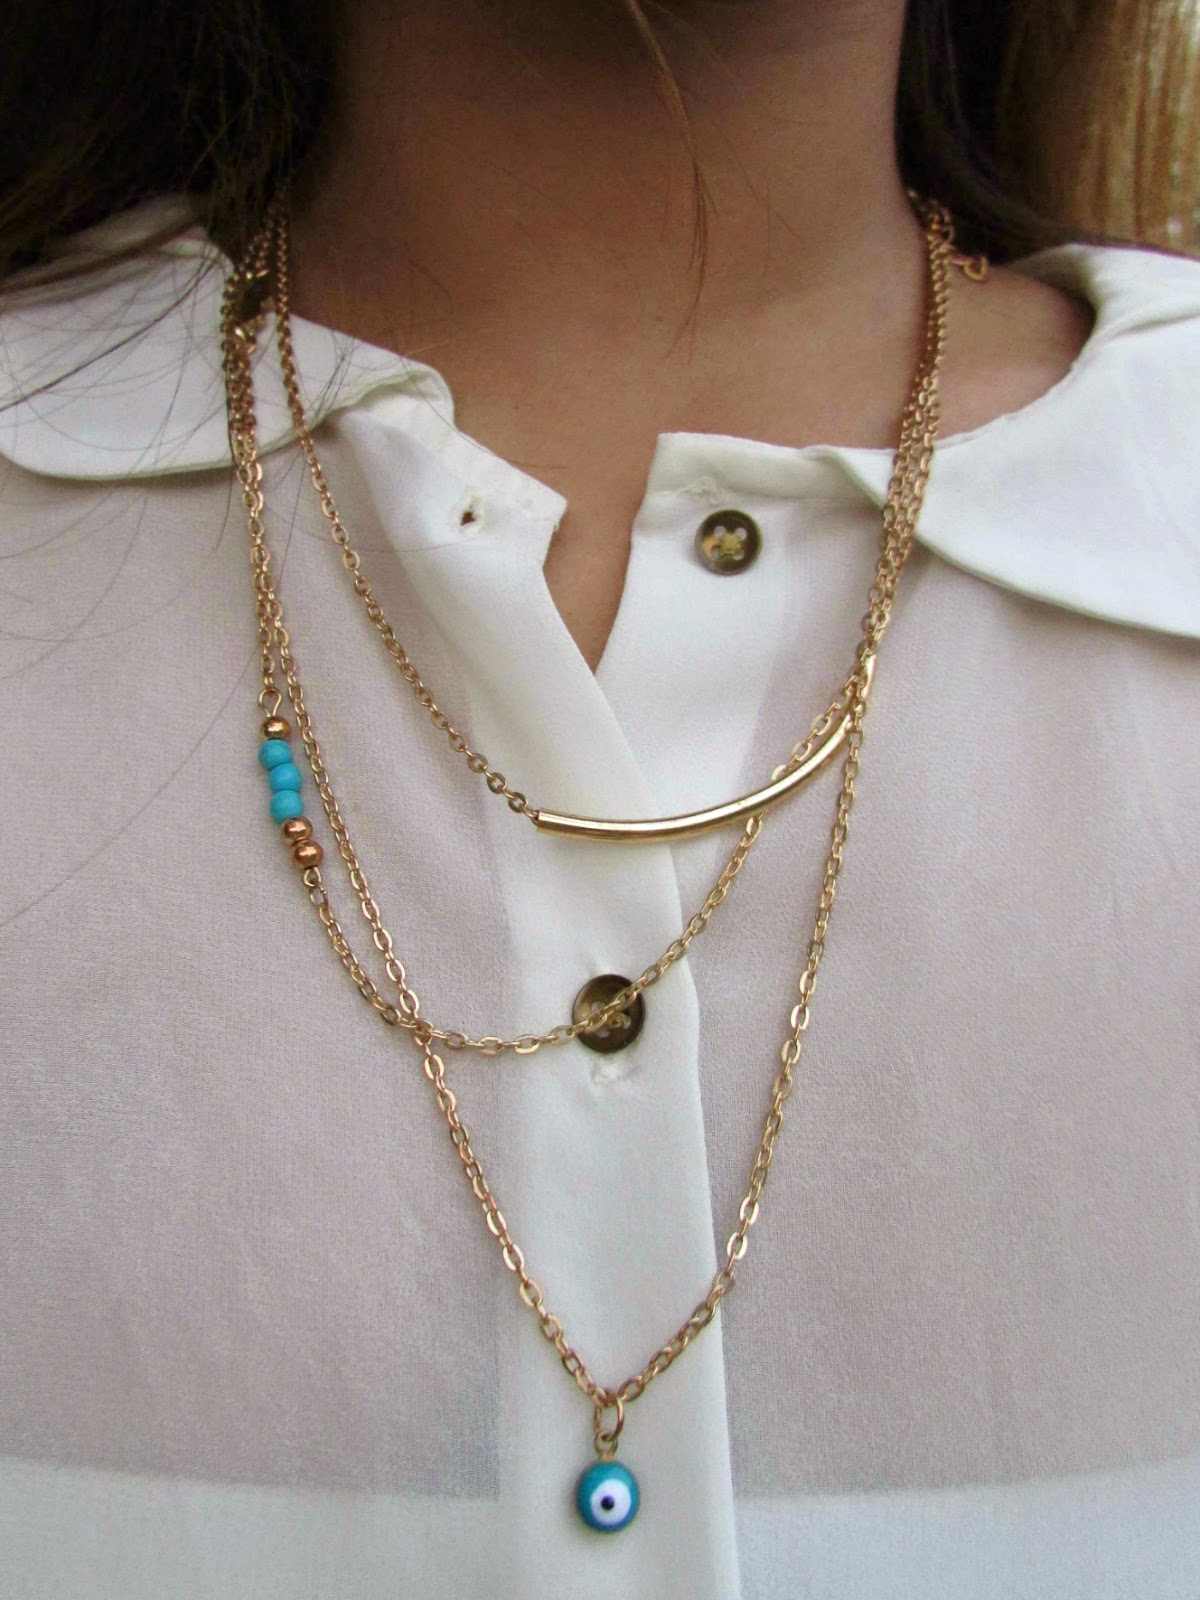 three strand necklace, evil eye necklace,hamsa necklace, summer jewelry,summer trends 2015, fashion,floral shorts, cute summer necklace,born pretty store, three strand tassel necklace,Statement necklace, necklace, statement necklaces, big necklace, heavy necklaces , gold necklace, silver necklace, silver statement necklace, gold statement necklace, studded statement necklace , studded necklace, stone studded necklace, stone necklace, stove studded statement necklace, stone statement necklace, stone studded gold statement necklace, stone studded silver statement necklace, black stone necklace, black stone studded statement necklace, black stone necklace, black stone statement necklace, neon statement necklace, neon stone statement necklace, black and silver necklace, black and gold necklace, blank and silver statement necklace, black and gold statement necklace, silver jewellery, gold jewellery, stove jewellery, stone studded jewellery, imitation jewellery, artificial jewellery, junk jewellery, cheap jewellery , bornprettystore Statement necklace, bornprettystore  necklace, bornprettystore statement necklaces,bornprettystore big necklace, bornprettystore heavy necklaces , bornprettystore gold necklace, bornprettystoresilver necklace, bornprettystore silver statement necklace,bornprettystore gold statement necklace, bornprettystore studded statement necklace ,bornprettystore studded necklace, bornprettystore stone studded necklace,bornprettystore stone necklace, bornprettystore stove studded statement necklace,bornprettystore stone statement necklace, bornprettystore stone studded gold statement necklace, bornprettystore stone studded silver statement necklace, bornprettystore black stone necklace, bornprettystore black stone studded statement necklace, bornprettystore black stone necklace,bornprettystore black stone statement necklace,bornprettystore neon statement necklace, bornprettystore neon stone statement necklace, bornprettystore black and silver necklace,bornprettystore black and gold necklace,bornprettystore black  and silver statement necklace,bornprettystore black and gold statement necklace, silver jewellery,bornprettystore gold jewellery, bornprettystore stove jewellery,bornprettystore stone studded jewellery,bornprettystore imitation jewellery, bornprettystore artificial jewellery, bornprettystore junk jewellery, in-trigue cheap jewellery ,  Cheap Statement necklace, Cheap necklace, Cheap statement necklaces,Cheap big necklace, Cheap heavy necklaces , Cheap gold necklace, Cheap silver necklace, Cheap silver statement necklace,Cheap gold statement necklace, Cheap studded statement necklace , Cheap studded necklace, Cheap stone studded necklace, Cheap stone necklace, Cheap stove studded statement necklace, Cheap stone statement necklace, Cheap stone studded gold statement necklace, Cheap stone studded silver statement necklace, Cheap black stone necklace, Cheap black stone studded statement necklace, Cheap black stone necklace, Cheap black stone statement necklace, Cheap neon statement necklace, Cheap neon stone statement necklace, Cheap black and silver necklace, Cheap black and gold necklace, Cheap black  and silver statement necklace, Cheap black and gold statement necklace, silver jewellery, Cheap gold jewellery, Cheap stove jewellery, Cheap stone studded jewellery, Cheap imitation jewellery, Cheap artificial jewellery, Cheap junk jewellery, Cheap cheap jewellery , Black pullover, black and grey pullover, black and white pullover, back cutout, back cutout pullover, back cutout sweater, back cutout jacket, back cutout top, back cutout tee, back cutout tee shirt, back cutout shirt, back cutout dress, back cutout trend, back cutout summer dress, back cutout spring dress, back cutout winter dress, High low pullover, High low sweater, High low jacket, High low top, High low tee, High low tee shirt, High low shirt, High low dress, High low trend, High low summer dress, High low spring dress, High low winter dress, chinese shopping website,wholesale shopping website,chinese wholesale shopping online,chinese wholesale shopping, chinese online shopping on wholesale prices, clothes on wholesale prices,cholthes on wholesake prices,clothes online on wholesales prices,online shopping, online clothes shopping, online jewelry shopping,how to shop online, how to shop clothes online, how to shop earrings online, how to shop,skirts online, dresses online,jeans online, shorts online, tops online, blouses online,shop tops online, shop blouses online, shop skirts online, shop dresses online, shop botoms online, shop summer dresses online, shop bracelets online, shop earrings online, shop necklace online, shop rings online, shop highy low skirts online, shop sexy dresses onle, men's clothes online, men's shirts online,men's jeans online, mens.s jackets online, mens sweaters online, mens clothes, winter coats online, sweaters online, cardigens online,beauty , fashion,beauty and fashion,beauty blog, fashion blog , indian beauty blog,indian fashion blog, beauty and fashion blog, indian beauty and fashion blog, indian bloggers, indian beauty bloggers, indian fashion bloggers,indian bloggers online, top 10 indian bloggers, top indian bloggers,top 10 fashion bloggers, indian bloggers on blogspot,home remedies, how to, earings,Autumn, fashion, in-trigue, wishlist,Winter,fall, fall abd winter, winter clothes , fall clothes, fall and winter clothes, fall jacket, winter jacket, fall and winter jacket, fall blazer, winter blazer, fall and winter blazer, fall coat , winter coat, falland winter coat, fall coverup, winter coverup, fall and winter coverup, outerwear, coat , jacket, blazer, fall outerwear, winter outerwear, fall and winter outerwear, woolen clothes, wollen coat, woolen blazer, woolen jacket, woolen outerwear, warm outerwear, warm jacket, warm coat, warm blazer, warm sweater, coat , white coat, white blazer, white coat, white woolen blazer, white coverup, white woolens, online shopping, online shopping in india, online shopping in india from america, best online shopping store , best fashion clothing store, best online fashion clothing store, best online jewellery store, best online footwear store, best online store, beat online store for clothes, best online store for footwear, best online store for jewellery, best online store for dresses, worldwide shipping free, free shipping worldwide, online store with free shipping worldwide,best online store with worldwide shipping free,low shipping cost, low shipping cost for shipping to india, low shipping cost for shipping to asia, low shipping cost for shipping to korea,Friendship day , friendship's day, happy friendship's day, friendship day outfit, friendship's day outfit, how to wear floral shorts, floral shorts, styling floral shorts, how to style floral shorts, how to wear shorts, how to style shorts, how to style style denim shorts, how to wear denim shorts,how to wear printed shorts, how to style printed shorts, printed shorts, denim shorts, how to style black shorts, how to wear black shorts, how to wear black shorts with black T-shirts, how to wear black T-shirt, how to style a black T-shirt, how to wear a plain black T-shirt, how to style black T-shirt,how to wear shorts and T-shirt, what to wear with floral shorts, what to wear with black floral shorts,how to wear all black outfit, what to wear on friendship day, what to wear on a date, what to wear on a lunch date, what to wear on lunch, what to wear to a friends house, what to wear on a friends get together, what to wear on friends coffee date , what to wear for coffee,beauty,Pink, pink pullover, pink sweater, pink jumpsuit, pink sweatshirt, neon pink, neon pink sweater, neon pink pullover, neon pink jumpsuit , neon pink cardigan, cardigan , pink cardigan, sweater, jumper, jumpsuit, pink jumper, neon pink jumper, pink jacket, neon pink jacket, winter clothes, oversized coat, oversized winter clothes, oversized pink coat, oversized coat, oversized jacket, pink pullover, neon pink pullover,fur,furcoat,furjacket,furblazer,fur pullover,fur cardigan,front open fur coat,front open fur jacket,front open fur blazer,front open fur pullover,front open fur cardigan,real fur, real fur coat,real fur jacket,real fur blazer,real fur pullover,real fur cardigan, soft fur,soft fur coat,soft fur jacket,soft furblazer,soft fur pullover,sof fur cardigan, white fur,white fur coat,white fur jacket,white fur blazer, white fur pullover, white fur cardigan,trench, trench coat, trench coat online, trench coat india, trench coat online India, trench cost price, trench coat price online, trench coat online price, cheap trench coat, cheap trench coat online, cheap trench coat india, cheap trench coat online India, cheap trench coat , Chinese trench coat, Chinese coat, cheap Chinese trench coat, Korean coat, Korean trench coat, British coat, British trench coat, British trench coat online, British trench coat online, New York trench coat, New York trench coat online, cheap new your trench coat, American trench coat, American trench coat online, cheap American trench coat, low price trench coat, low price trench coat online , low price trench coat online india, low price trench coat india, how to style long coats, how to style winter coats, how to style winter trench coats, how to style winter long coats, how to style warm coats, how to style beige coat, how to style beige long coat, how to style beige trench coat, how to style beige coat, beige coat, beige long coat, beige long coat, beige frock coat, beige double breasted coat, double breasted coat, how to style frock coat, how to style double breasted coat, how to wear beige trench coat,how to wear beige coat, how to wear beige long coat, how to wear beige frock coat, how to wear beige double button coat, how to wear beige double breat coat, double button coat, what us trench coat, uses of trench coat, what is frock coat, uses of frock coat, what is long coat, uses of long coat, what is double breat coat, uses of double breasted coat, what is bouton up coat, uses of button up coat, what is double button coat, uses of double button coat, velvet leggings, velvet tights, velvet bottoms, embroided velvet leggings, embroided velvet tights, pattern tights, velvet pattern tights, floral tights , floral velvet tights, velvet floral tights, embroided  velvet leggings, pattern leggings , velvet pattern leggings , floral leggings , floral velvet leggings, velvet floral leggings ,Jewelry, fashion jewelry , luxury jewelry, elegant jewelry, classy jewelry, imitation jewelry, junk jewelry, classy silver jewelry, classy gold jewelry, classy silver plated jewelry, classy gold plated jewelry, classy rose gold plated jewelry, elegant gold jewelry , elegant silver jewelry, elegant silver plated jewelry, elegant gold plated jewelry, elegant rose gold plated jewelry , immigration gold jewelry, immigration silver jewelry, luxury gold jewelry, luxury silver jewelry, luxury gold plated jewelry, luxury silver plated jewelry, luxury rose gold plated jewelry, fashion silver jewelry, fashion gold jewelry , fashion silver plated jewelry, fashion gold plated jewelry, fashion rose gold plated jewelry, stone silver jewelry, fashion gold jewelry, stone gold jewelry, stone silver plated jewelry, stone gold plated jewelry, stone rose gold plated jewelry, junk stone jewelry, junk silver jewelry, junk gold jewelry, junk silver plated jewelry, junk gold plated jewelry, junk rose gold plated jewelry, in-trigue silver jewelry, in-trigue gold jewelry, in-trigue silver plated jewelry, in-trigue gold plated jewelry, in-trigue rose gold plated jewelry,in-trigue fashion jewelry, bornprettystore  immigration jewelry, bornprettystore junk jewelry, bornprettystore.com, bornprettystore review, bornprettystore jewelry review, bornprettystore fashion jewelry review, bornprettystore junk jewelry review, bornprettystore stone jewelry, bornprettystore stone jewelry review,best fashion clothing store, best online fashion clothing store, best online jewellery store,bornprettystore Review, bornprettystore coupon , bornprettystore shipping time, bornprettystore review india, bornprettystore blog, bornprettystore discount, bornprettystore code, bornprettystore shop, bornprettystore eBay, bornprettystore holo polish review, bornprettystore location, bornprettystore lucky bag, bornprettystore haul, bornprettystore website, bornprettystore flash sale, bornprettystore watch, bornprettystore  watches, bornprettystore watches sale, bornprettystore metal watches, bornprettystore leather watches, bornprettystore cool watches, bornprettystore sexy watches, bornprettystore cheap watches, bornprettystore watch price, bornprettystore chain watch , metal strap watch, leather strap watch, cool watch, sexy watch, cheap watch, watch price online, bracelet watch , bornprettystore online, metal strap watch online,  leather strap watch online, cool watch online, sexy watch online,  bornprettystore cheap watch online, bornprettystore watch price online online, bornprettystore bracelet watch online, bornprettystore metal strap watch online,  bornprettystore leather strap watch online, bornprettystore cool watch online, bornprettystore sexy watch online,  bornprettystore cheap watch online, bornprettystore watch price online online, bornprettystore bracelet watch online, bornprettystore.com, bornprettystore.com review, bornprettystore discount code